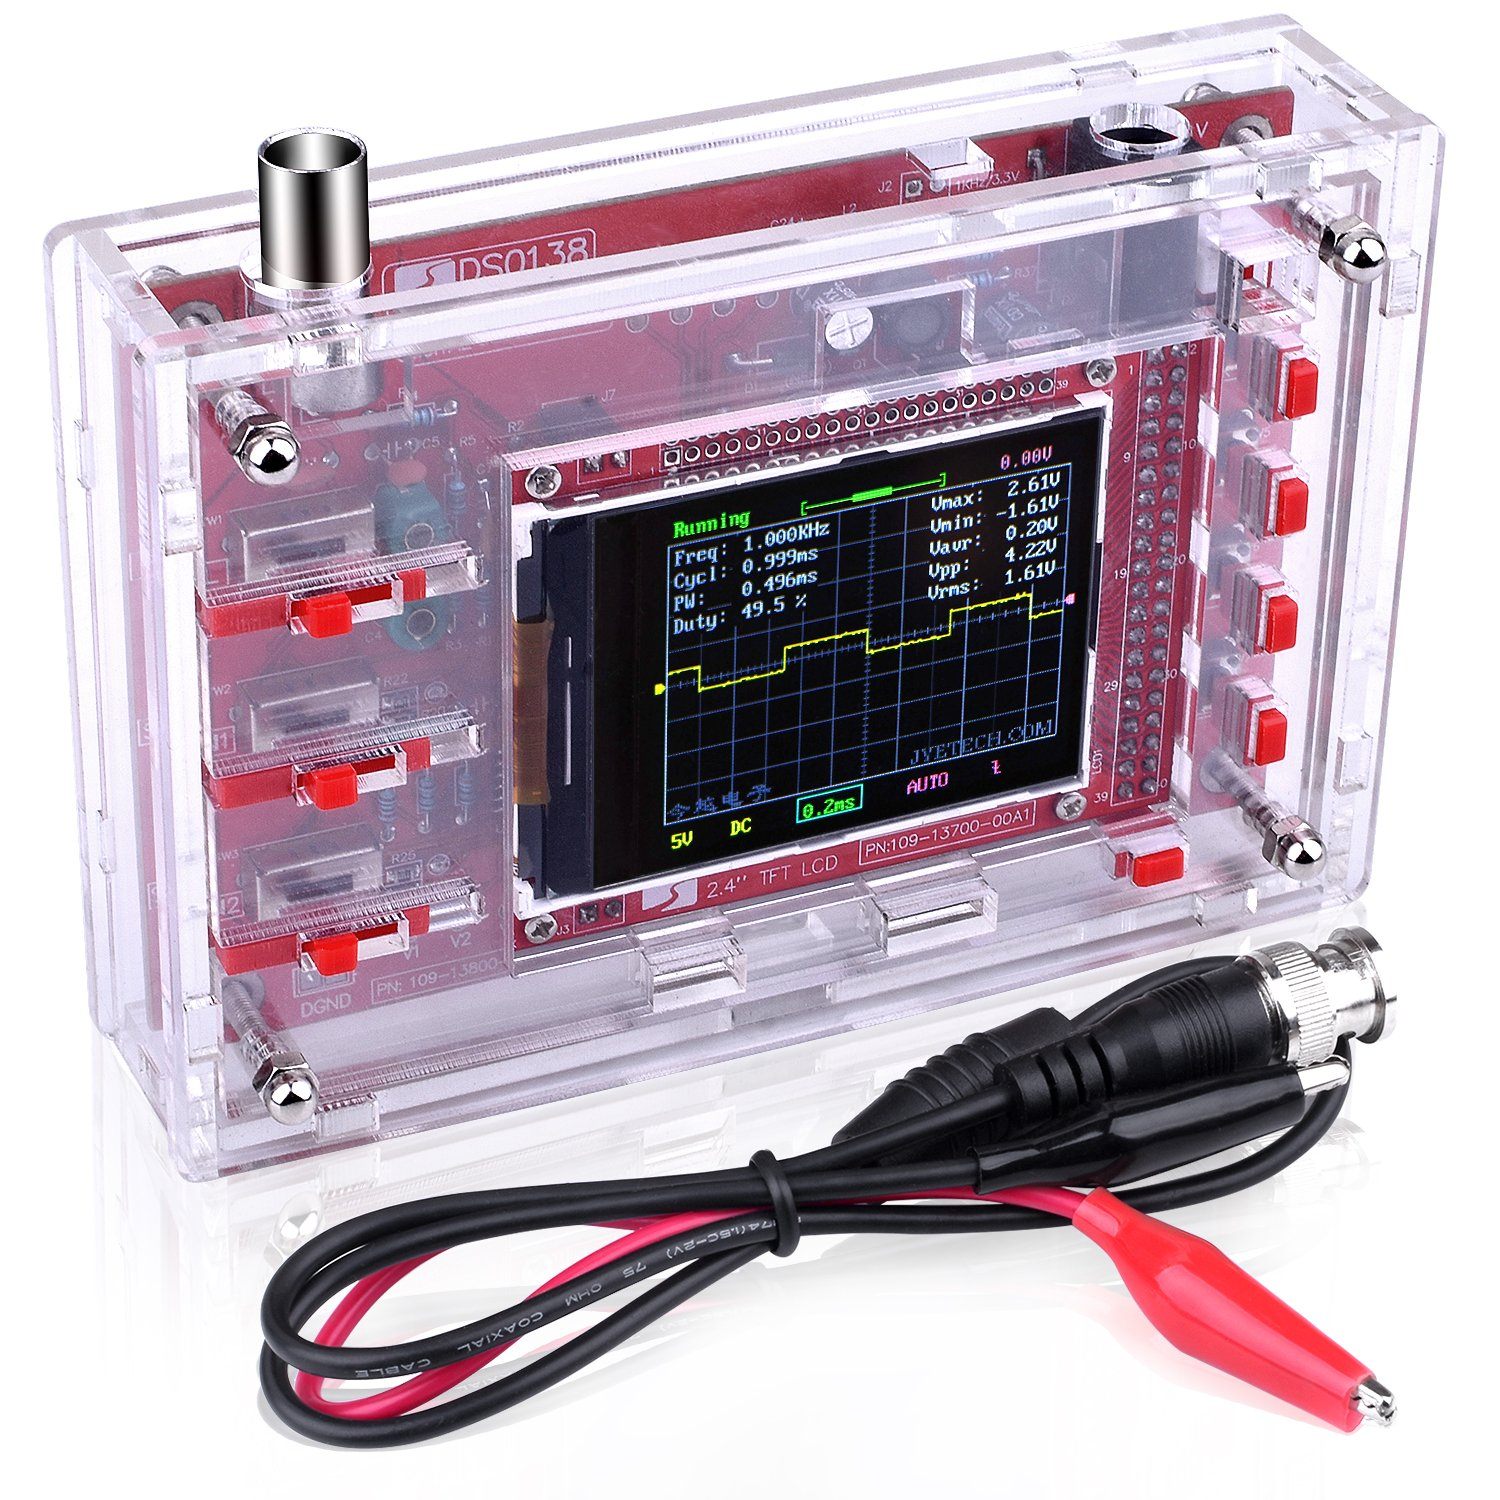 Quimat DSO138 Digital Oscilloscope Kit + Case / Open Source 2.4 inch TFT 1Msps with Probe Assembled Vision 13805KC-UK